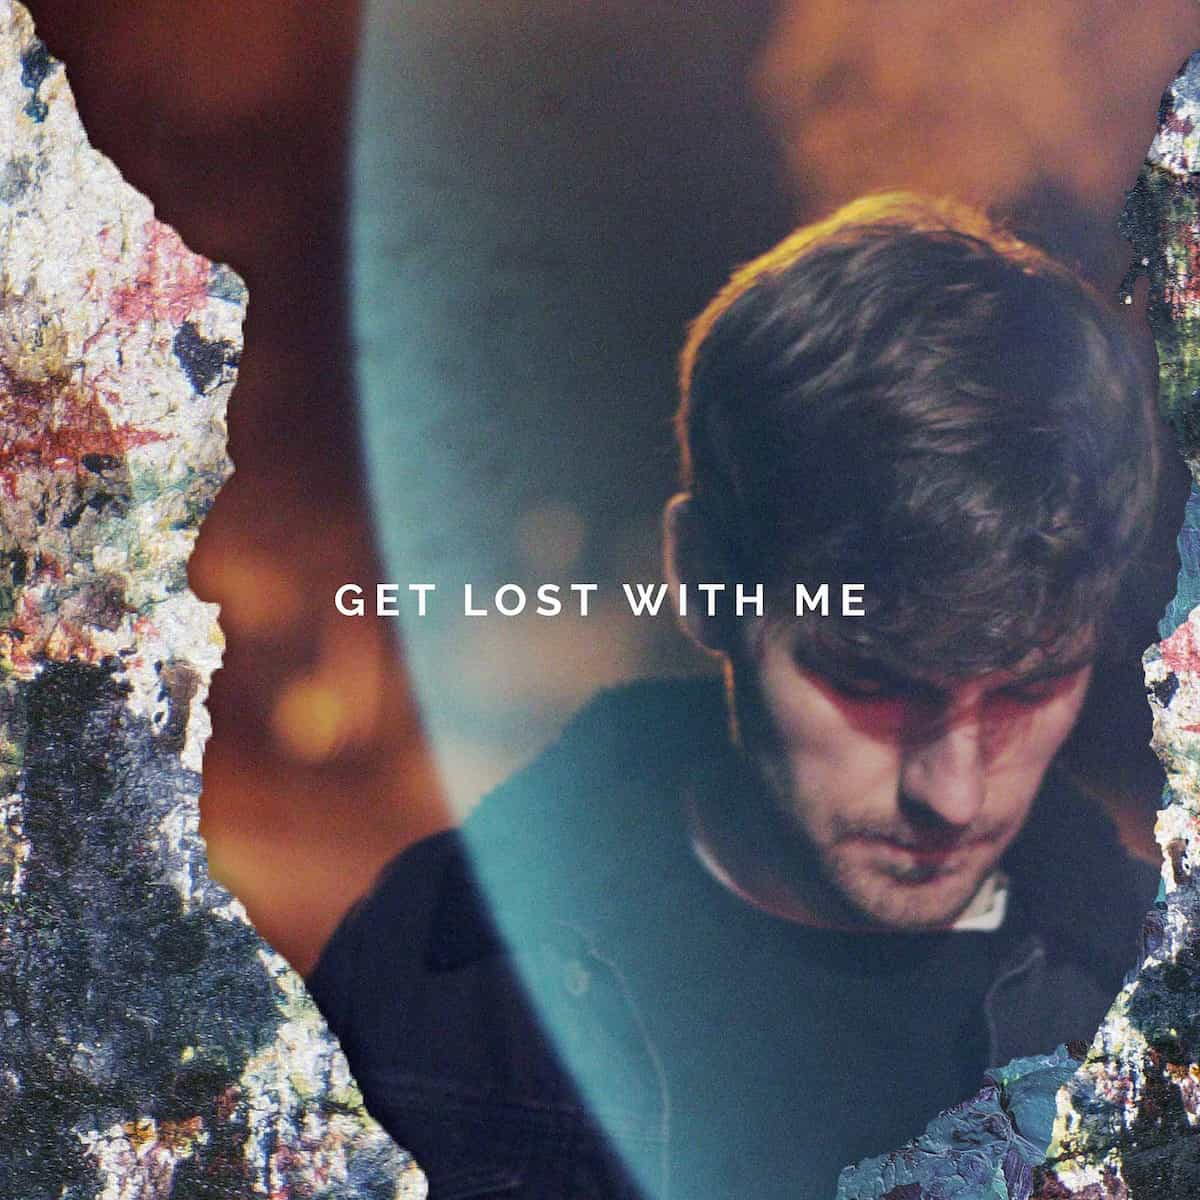 Jody Sinclair Artwork For Get Lost With ME